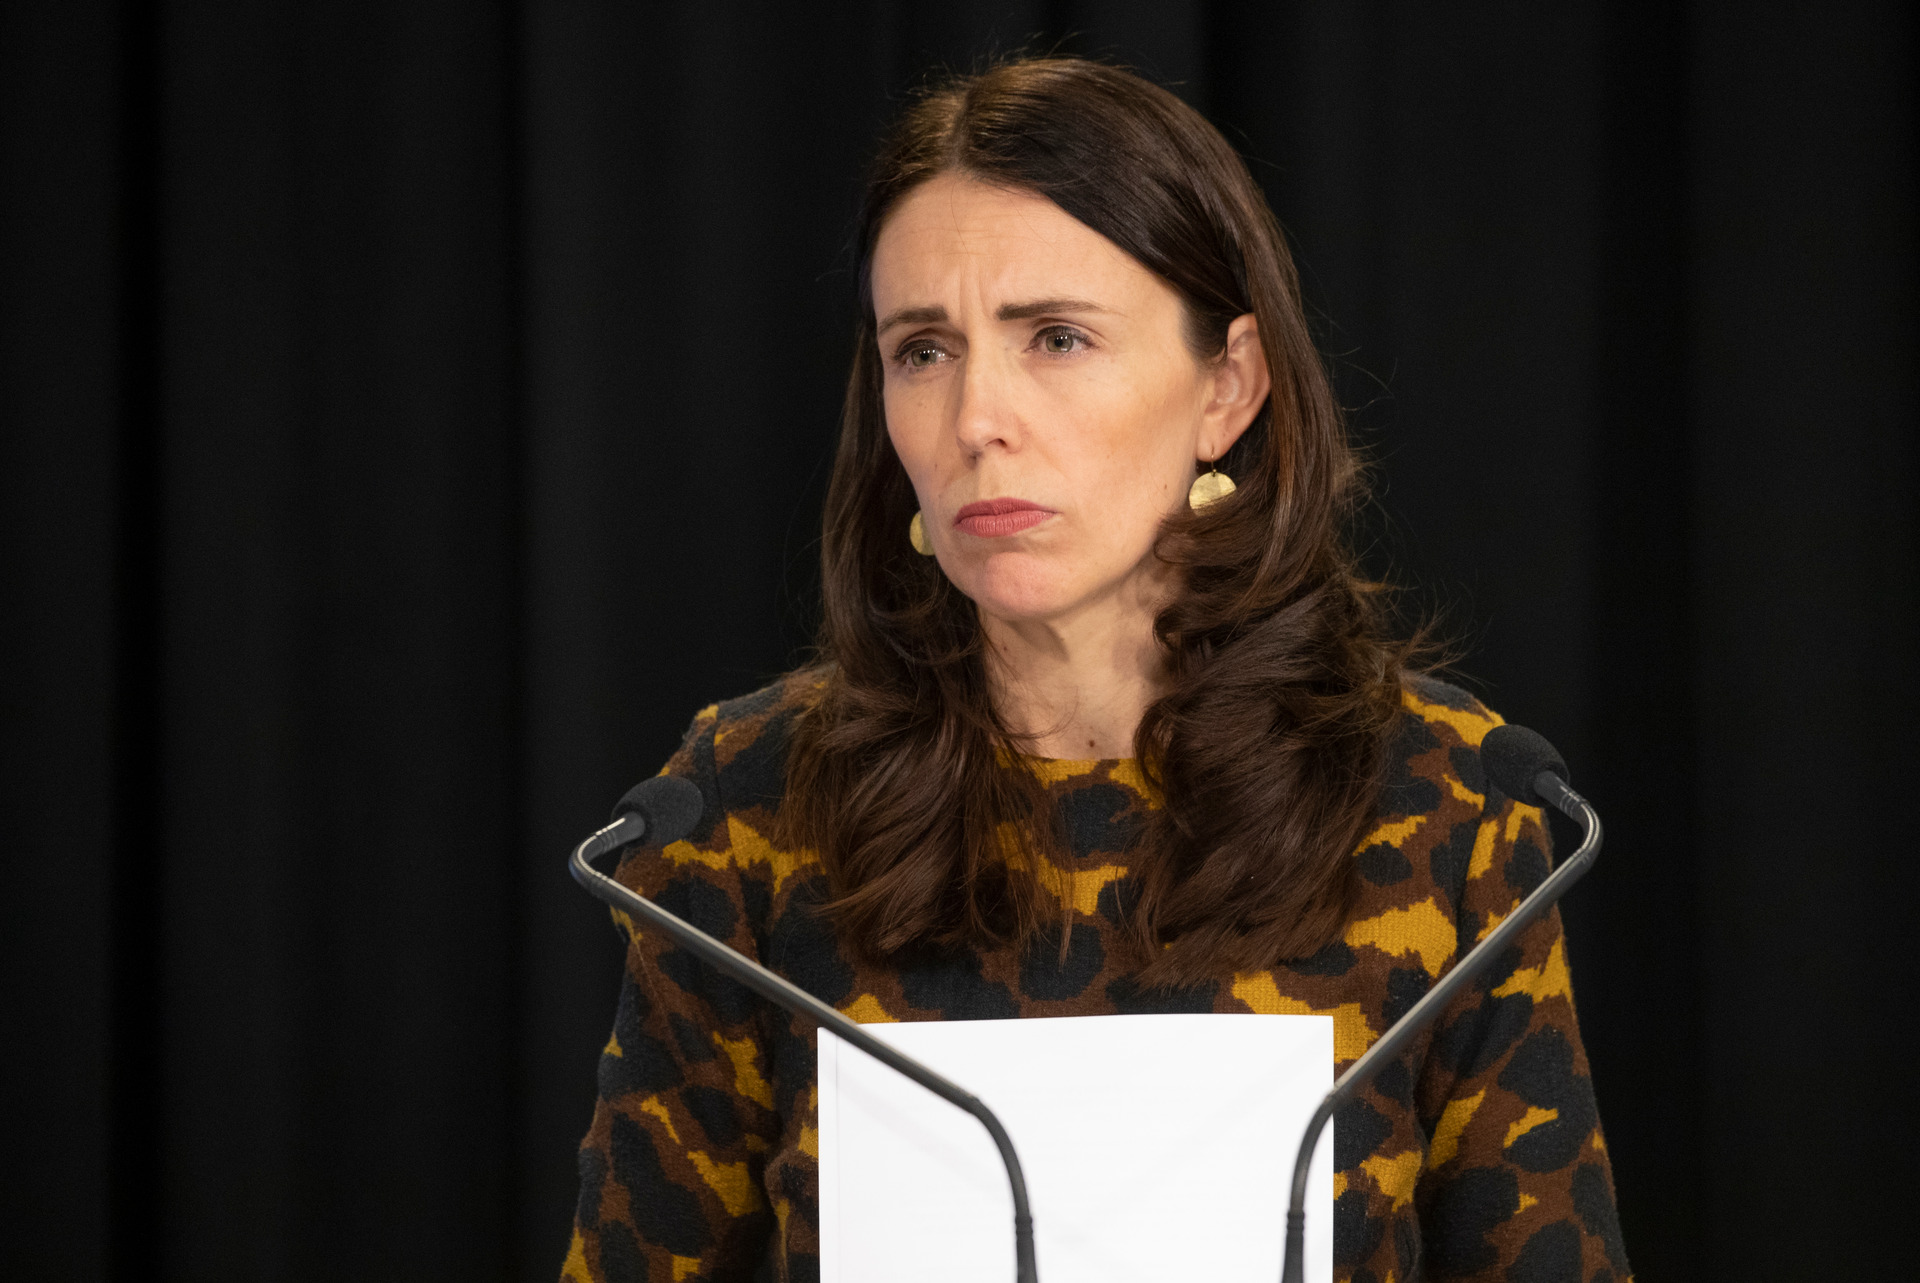 Ardern set to offer olive branch to Whānau Ora claimants